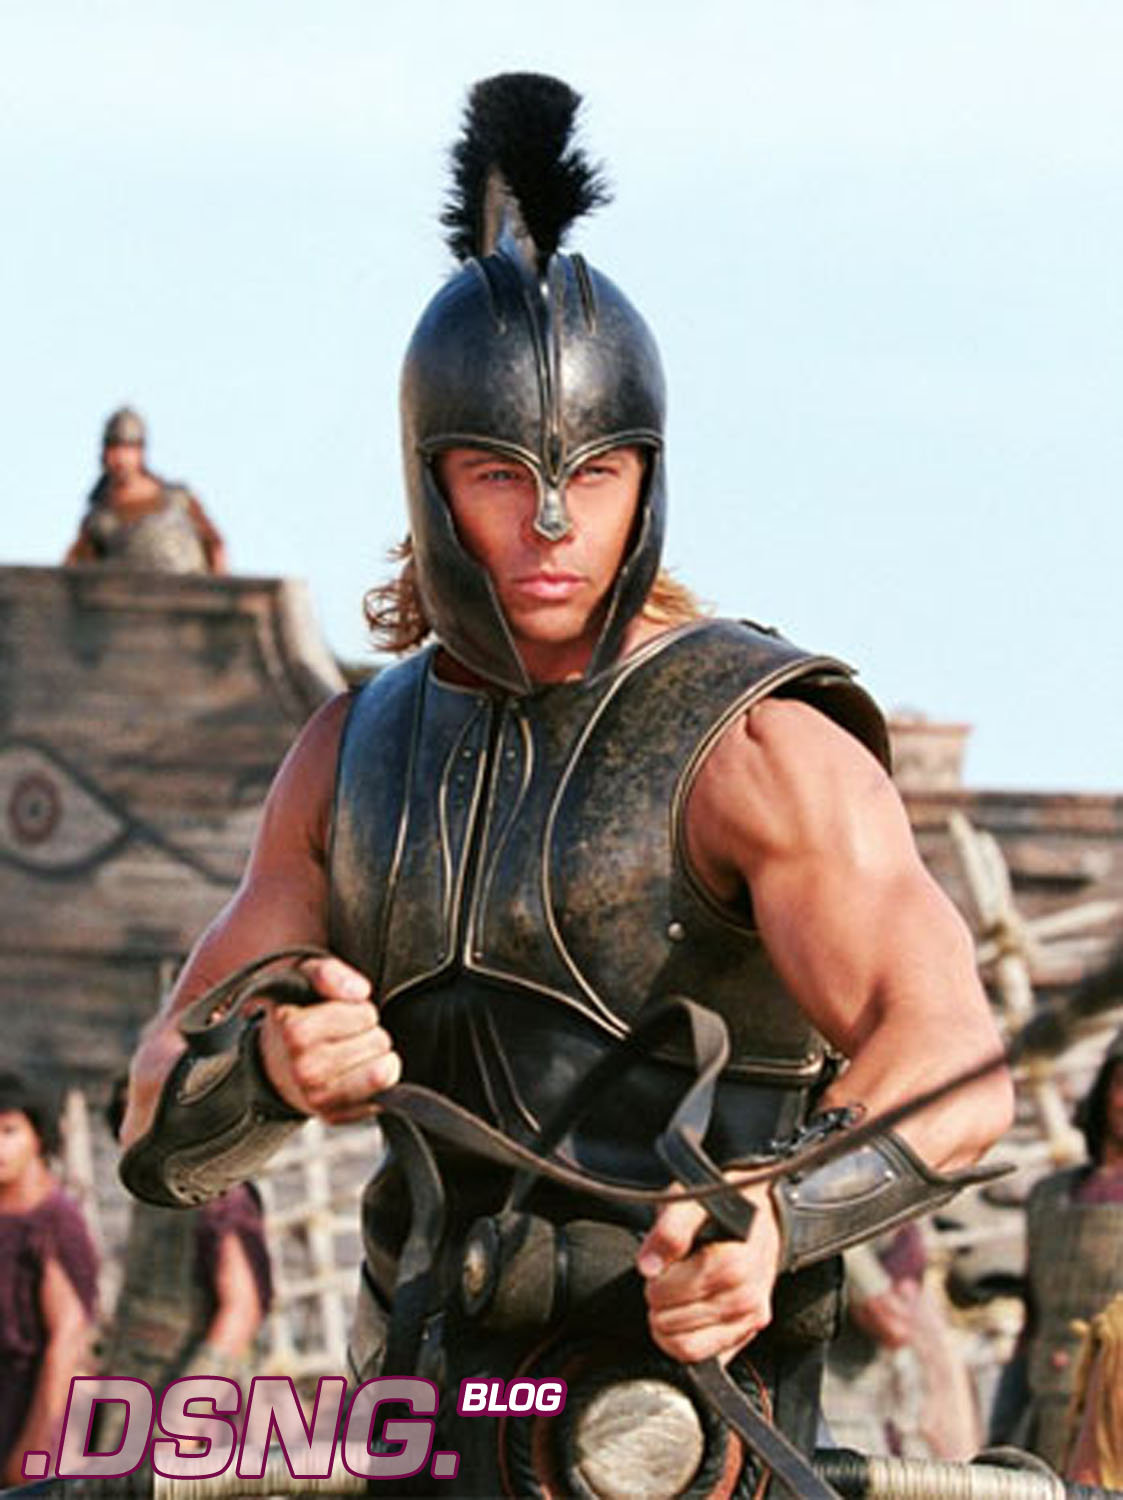 compare the iliad to the movie troy The film troy is a movie released in 2004 and was directed by wolfgang petersen, and has been influenced by the classical epic poem, the iliad which has been credited of the greek poet homer.